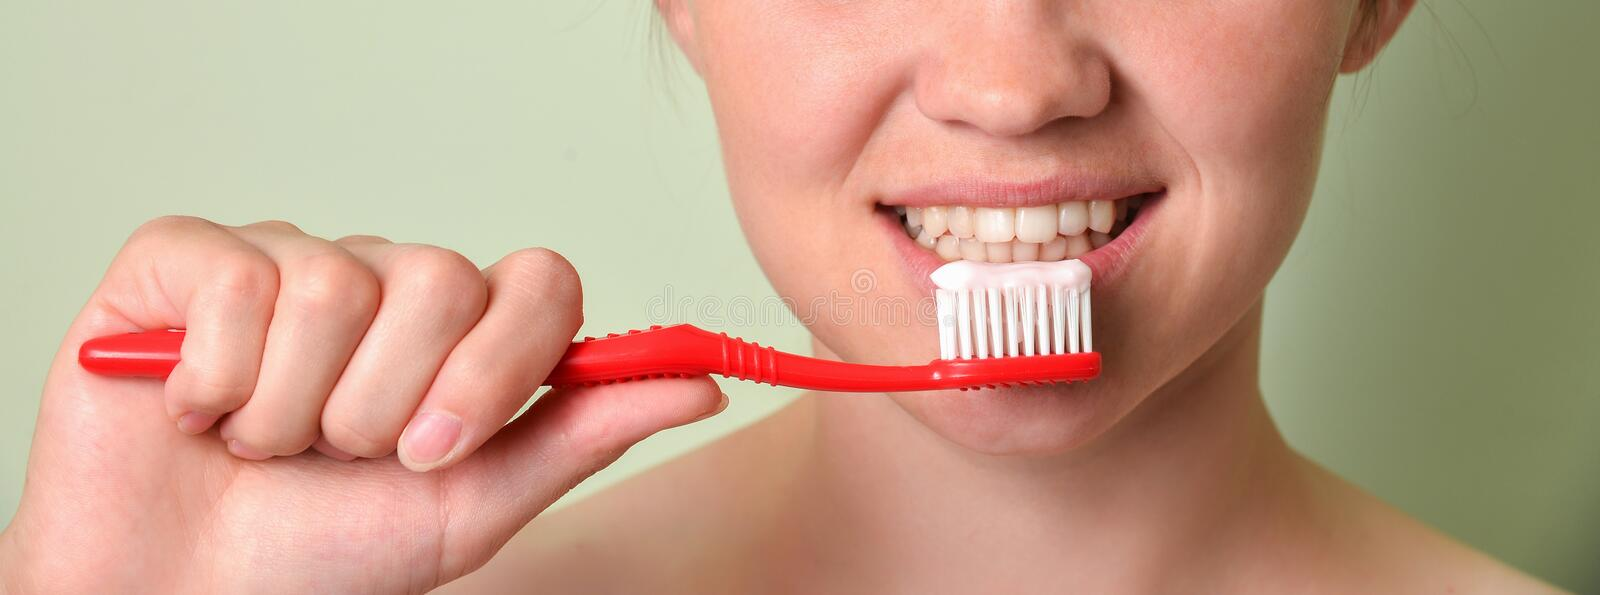 Girl brushing her teeth closeup, dental care concept royalty free stock images